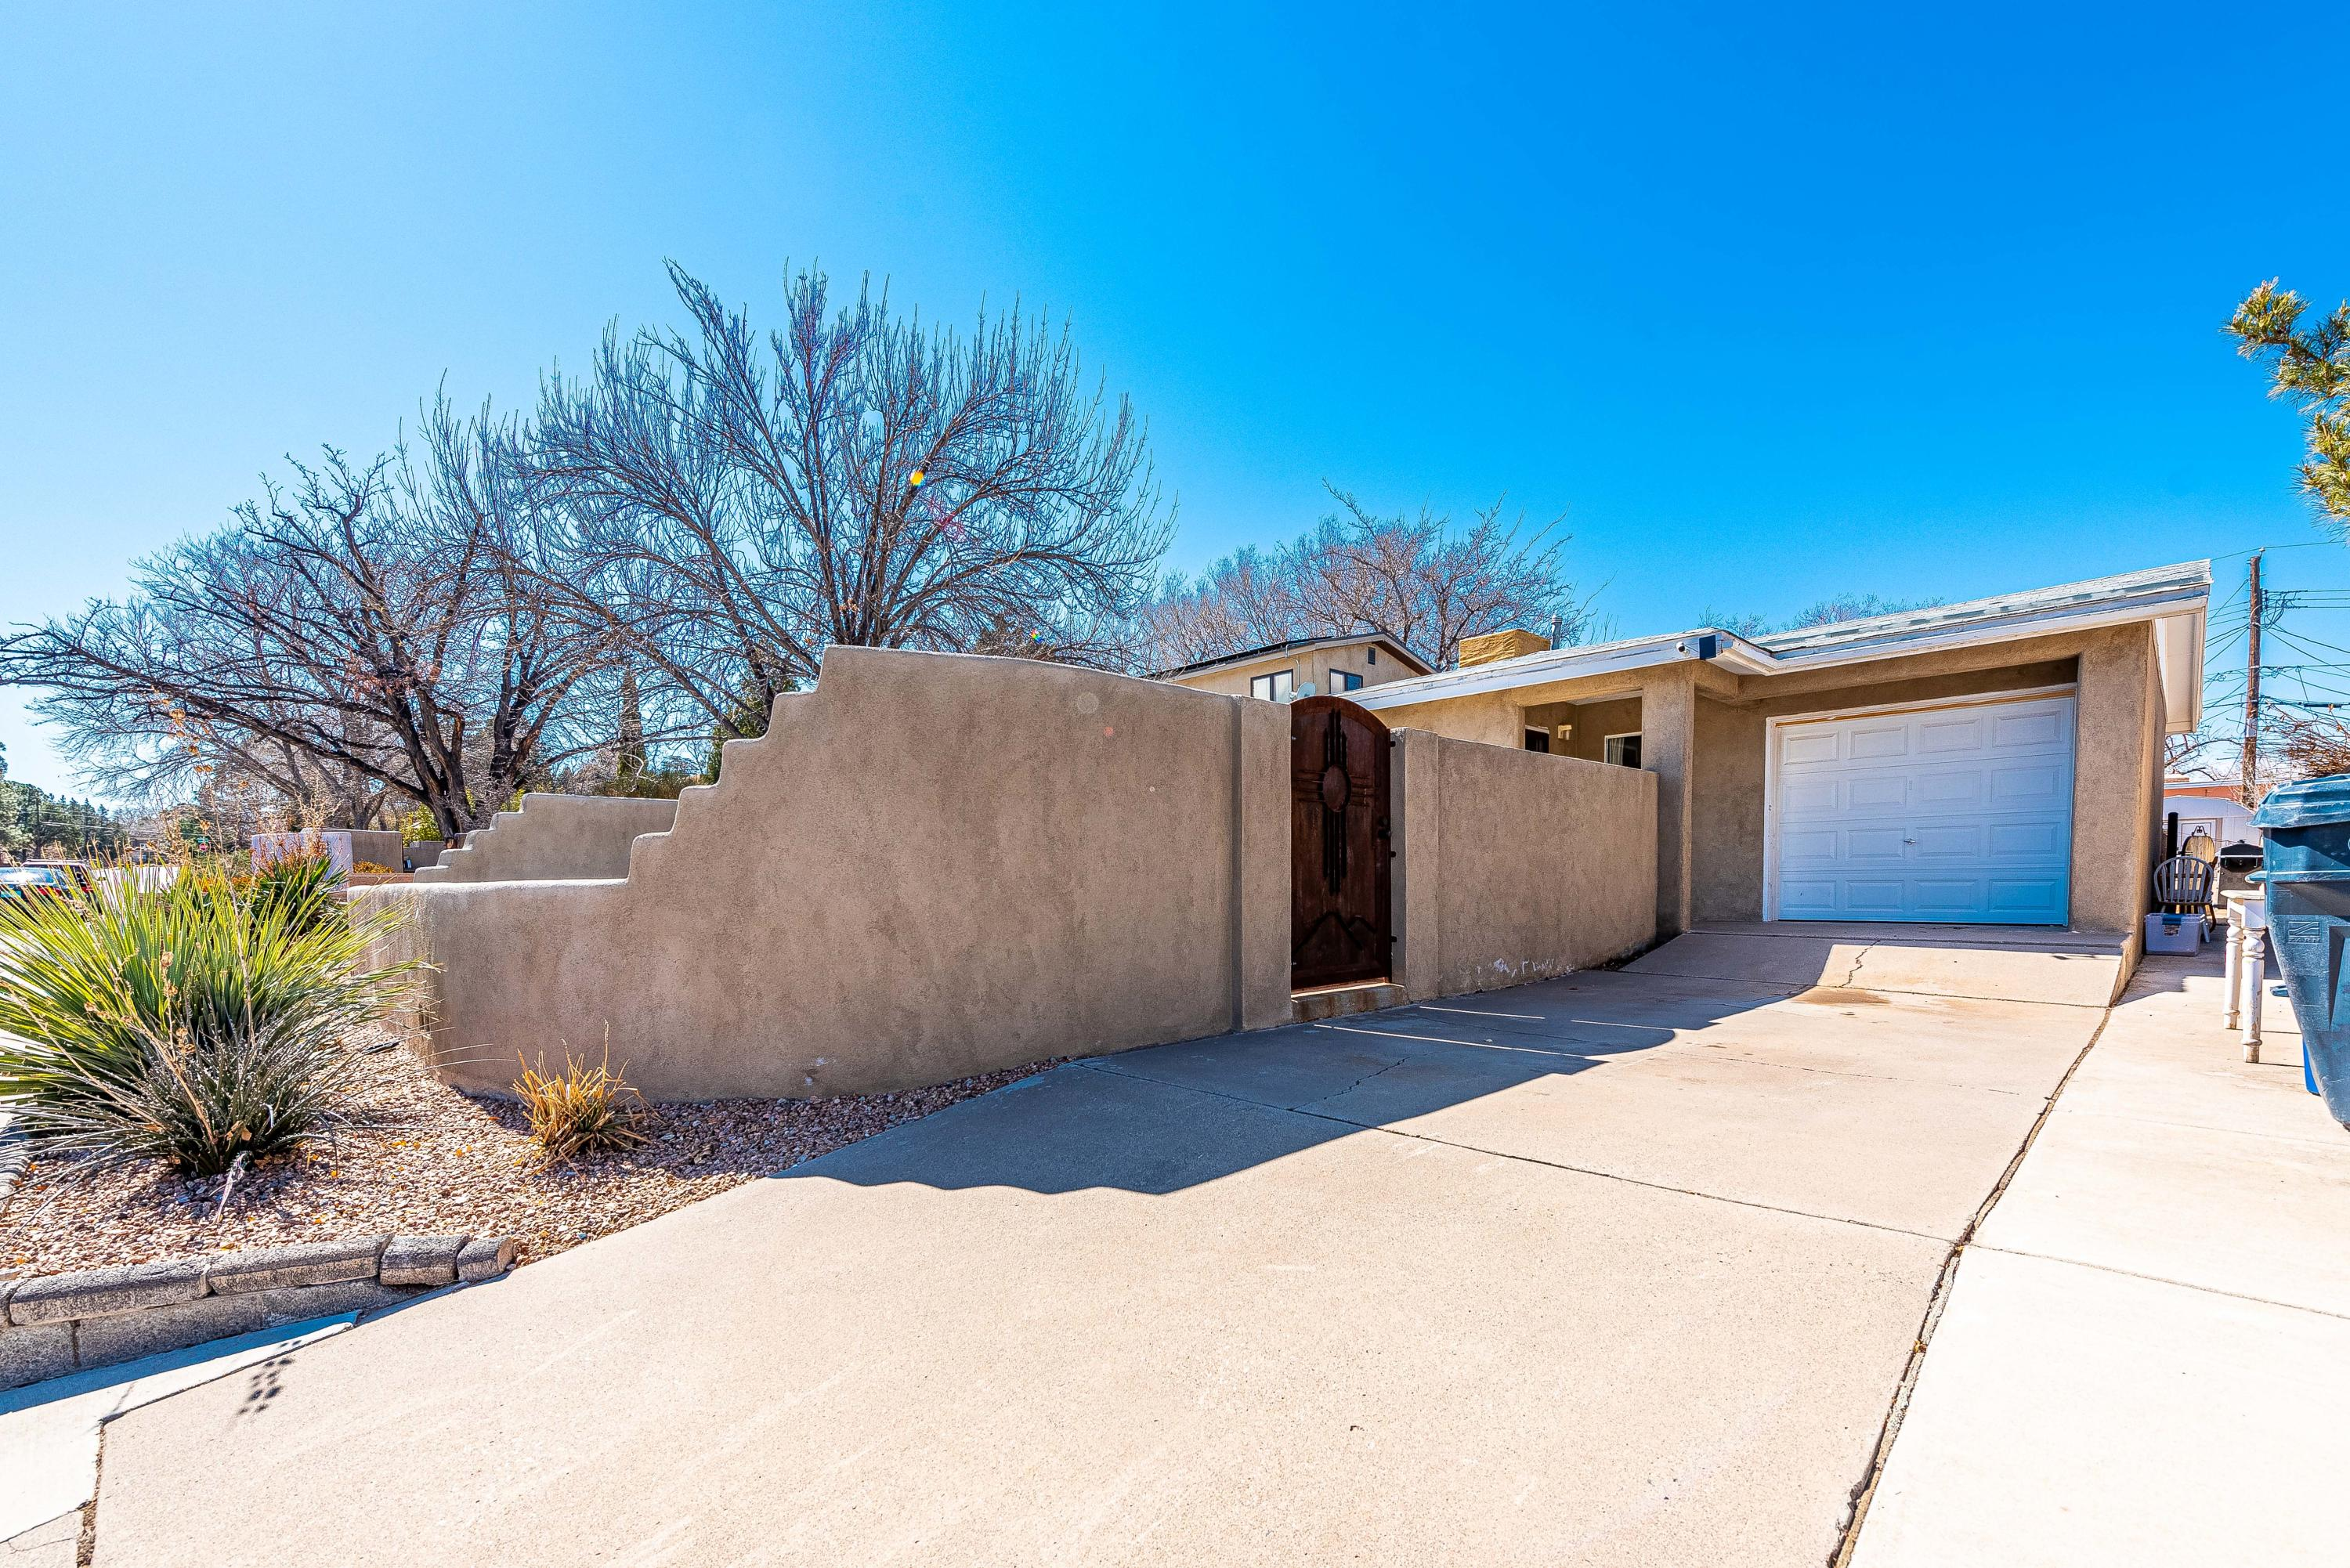 This is a 2 Bedroom home with original hardwood floors in living roman kitchen. Home offers Huge back yard, great for entertaining. Front yard offers enclosed court yard. Close to UNM.